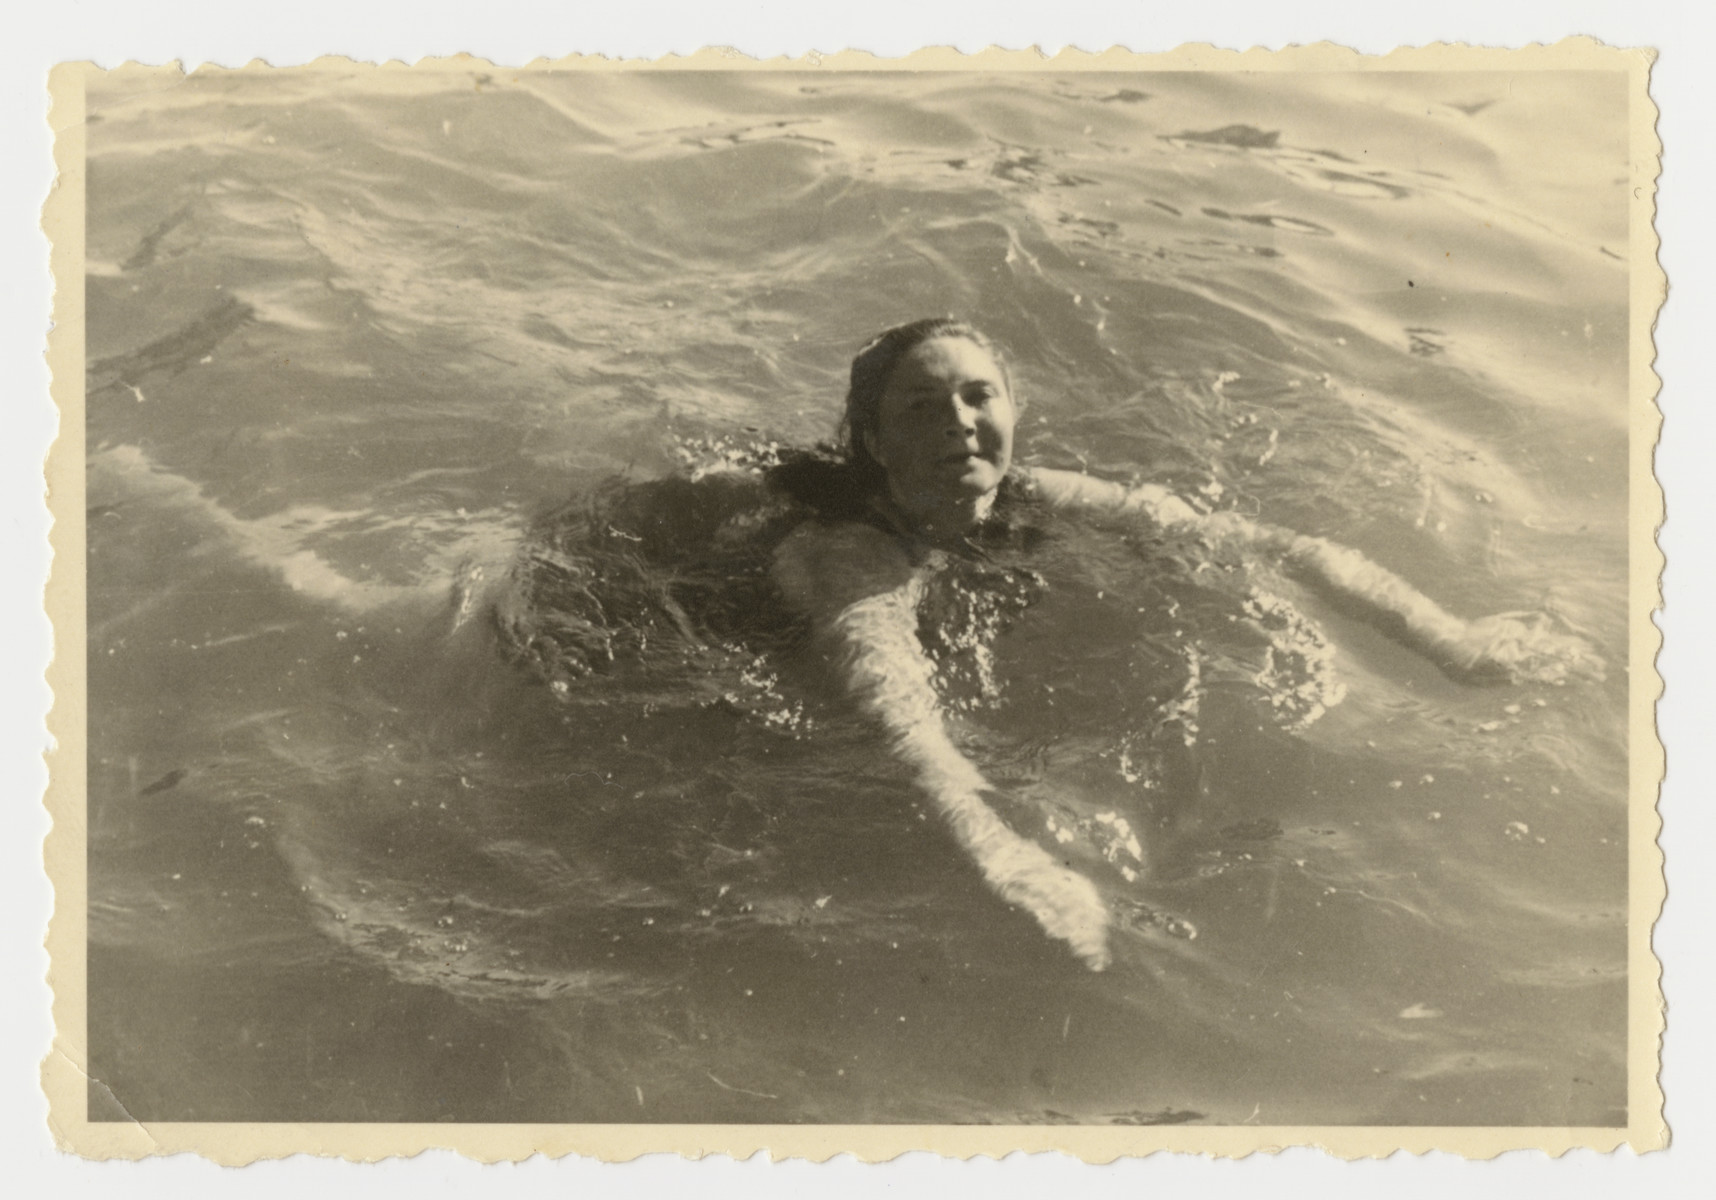 Lenka Gruenberg goes for a swim in the Deggendorf displaced persons camp.